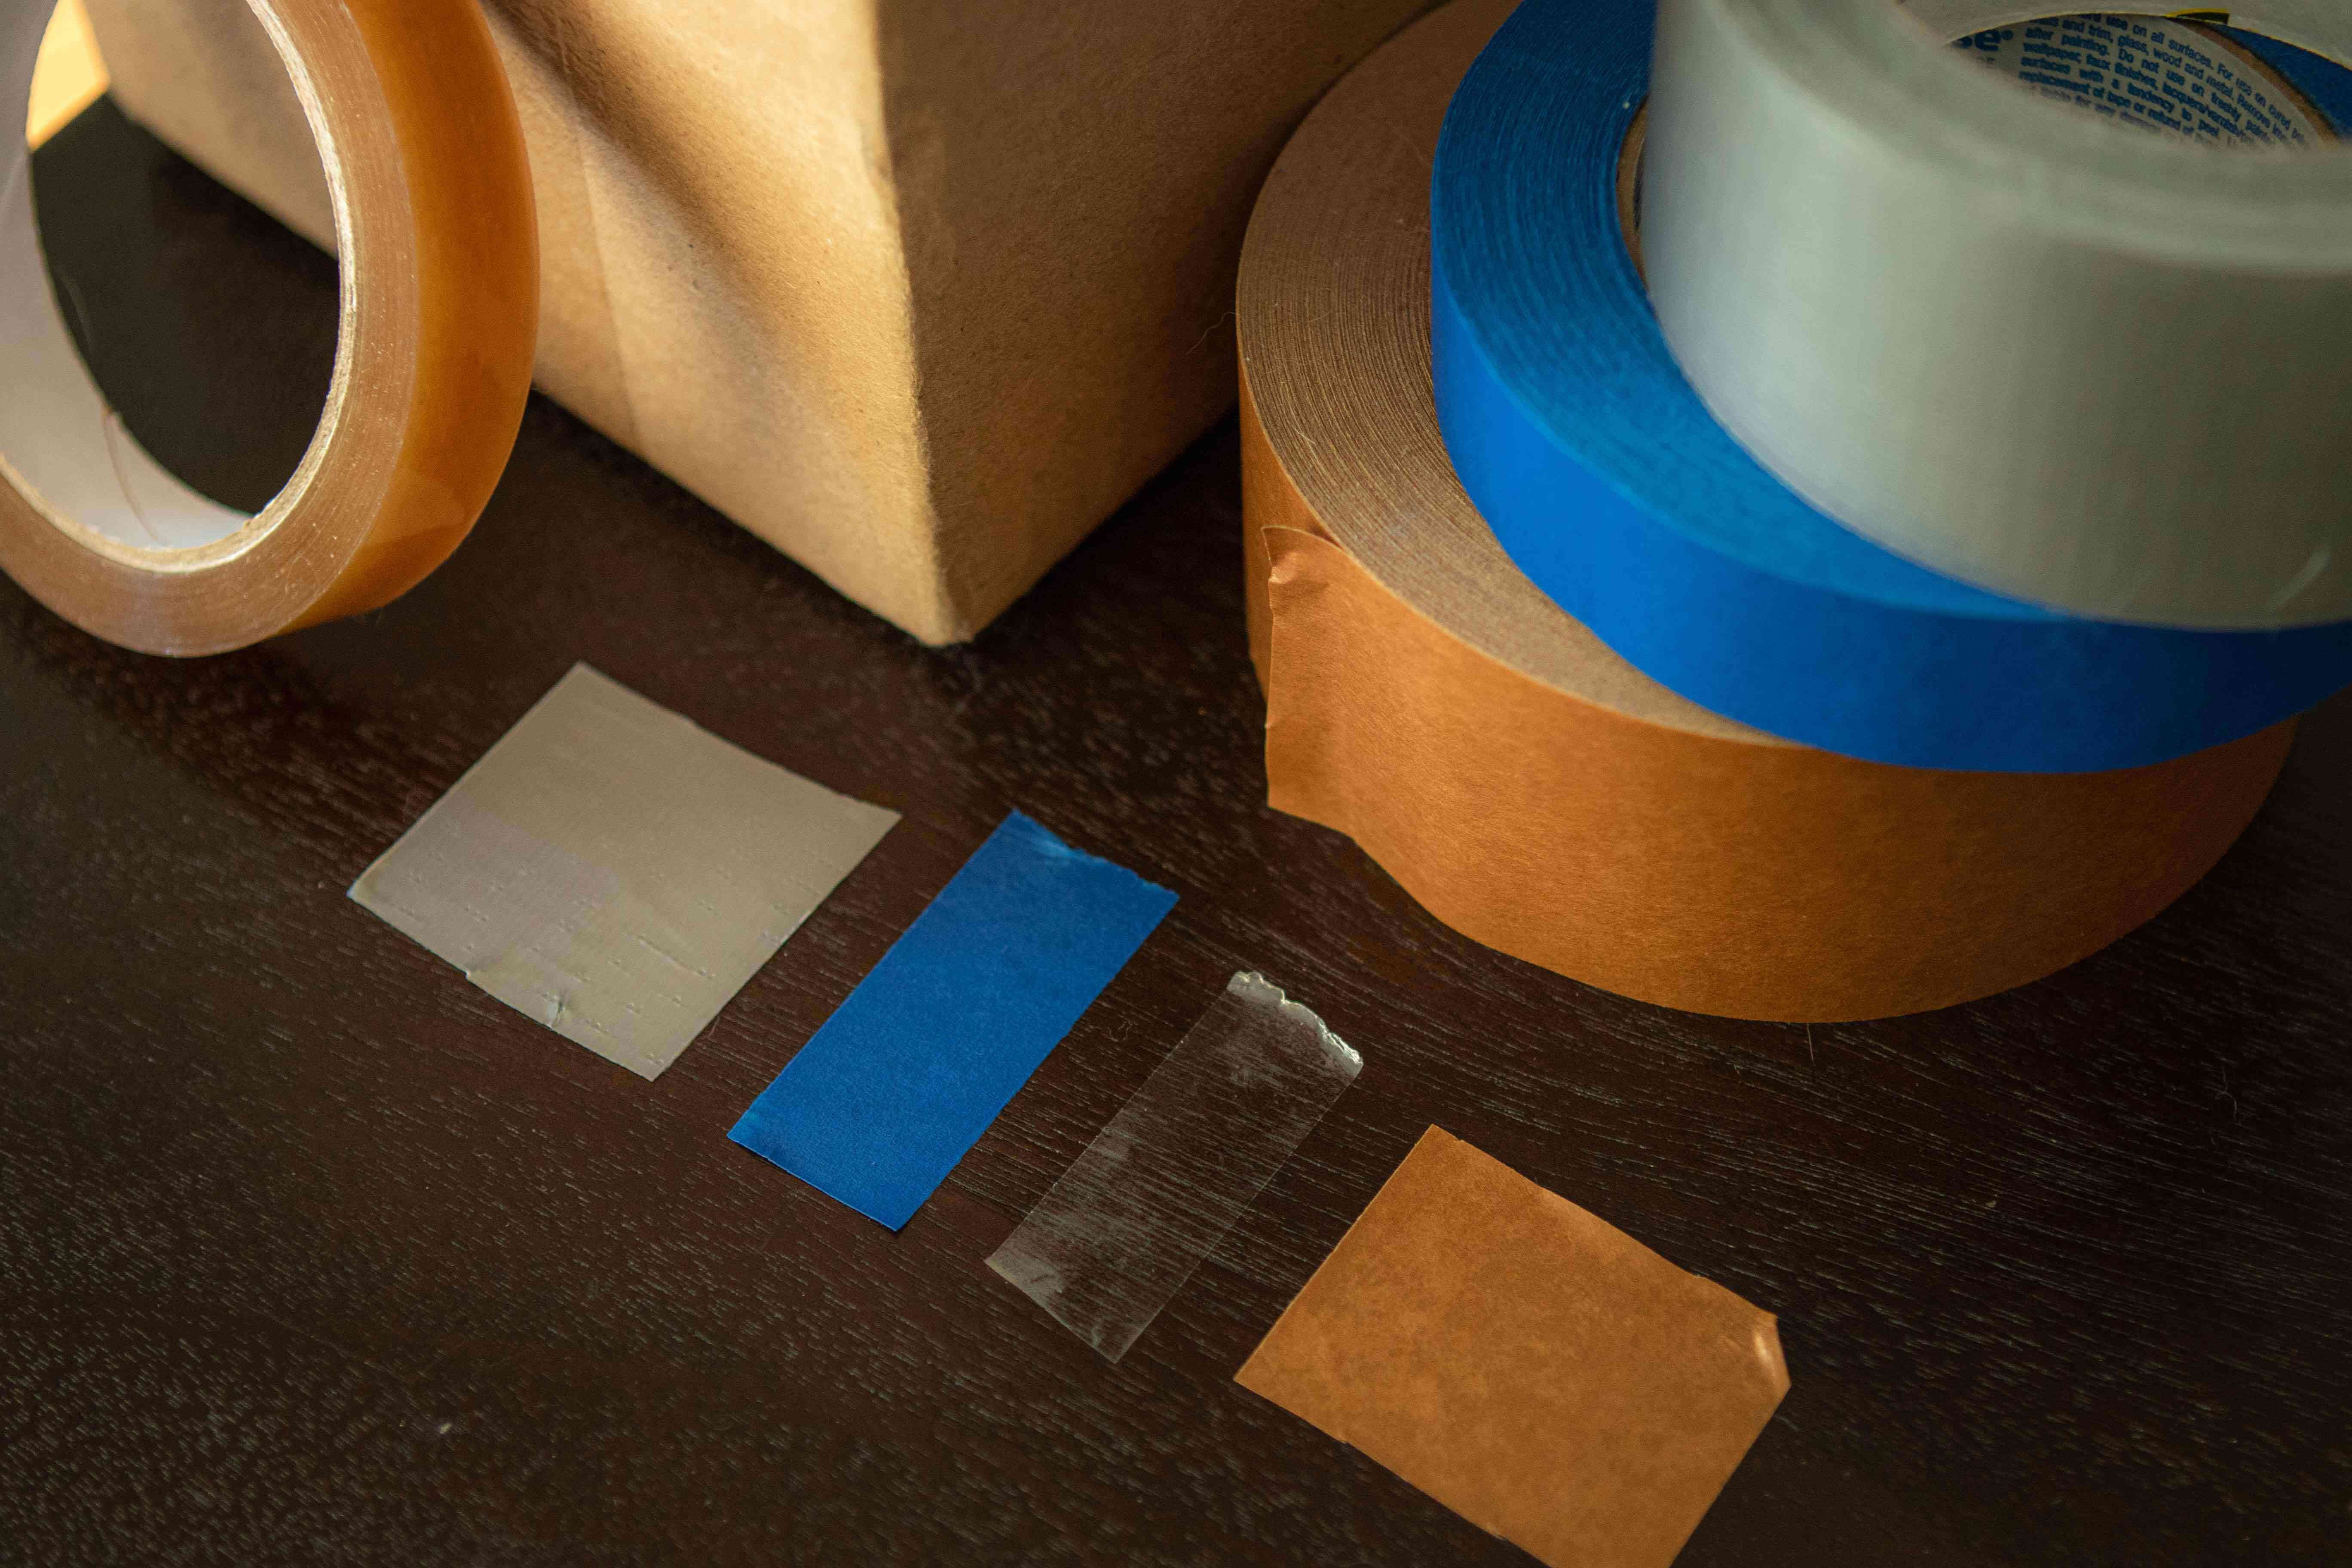 various types of tape with gray duct tape on top